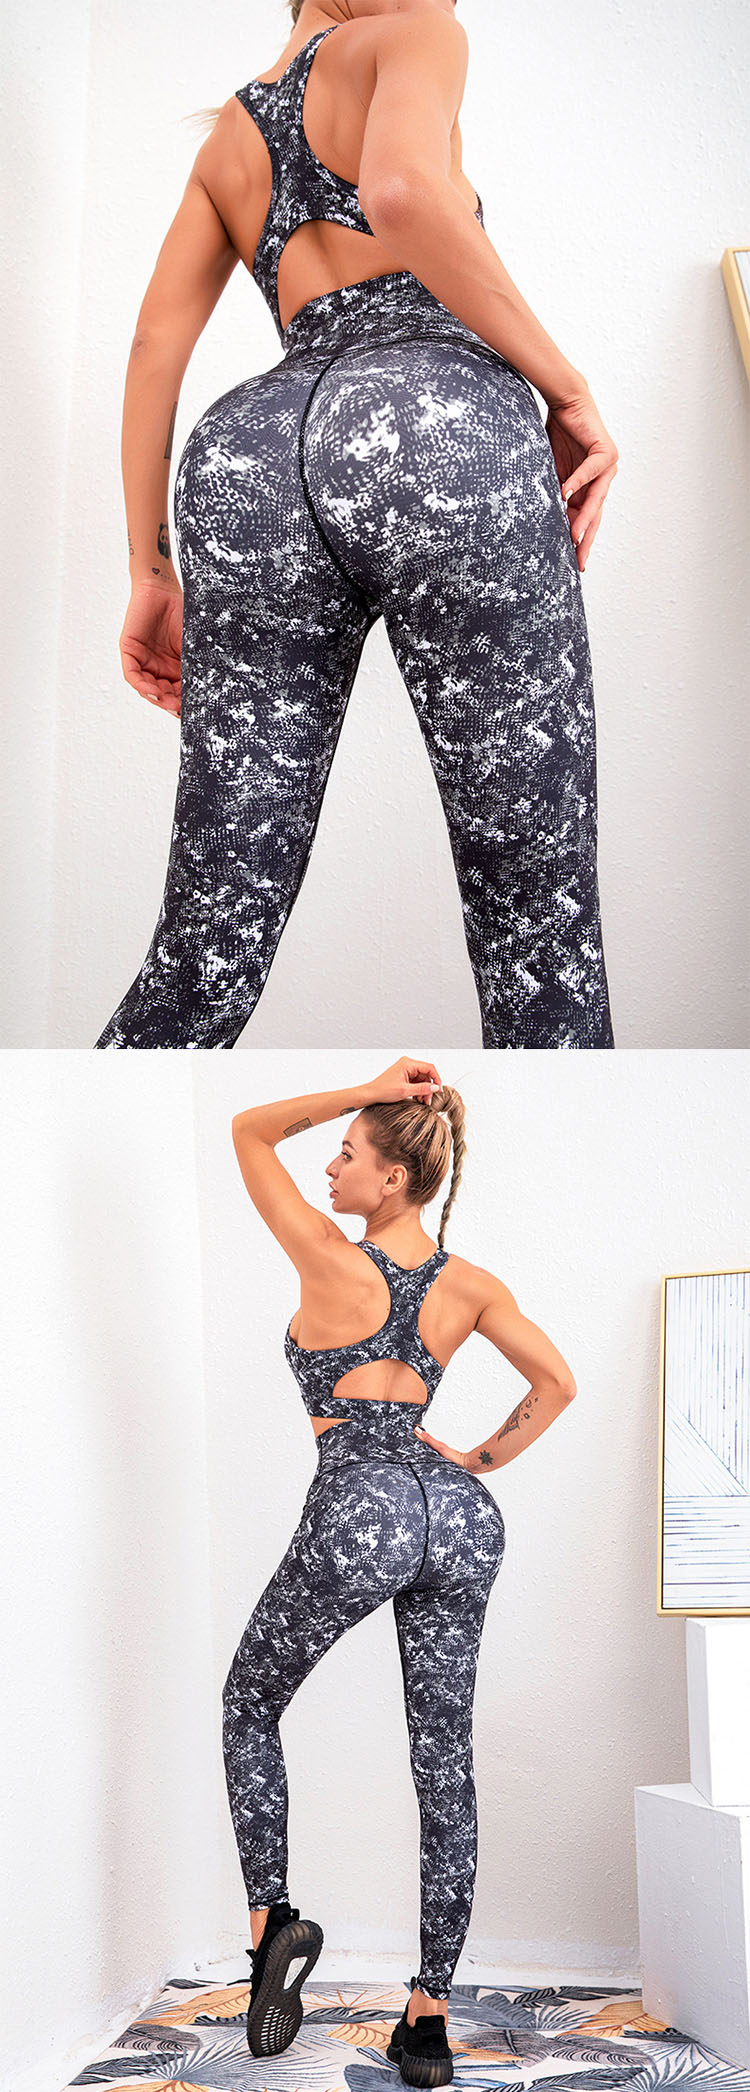 The elastic waist seal fits the waistline, which is not tight to wear, and the upper body is comfortable and stylish.